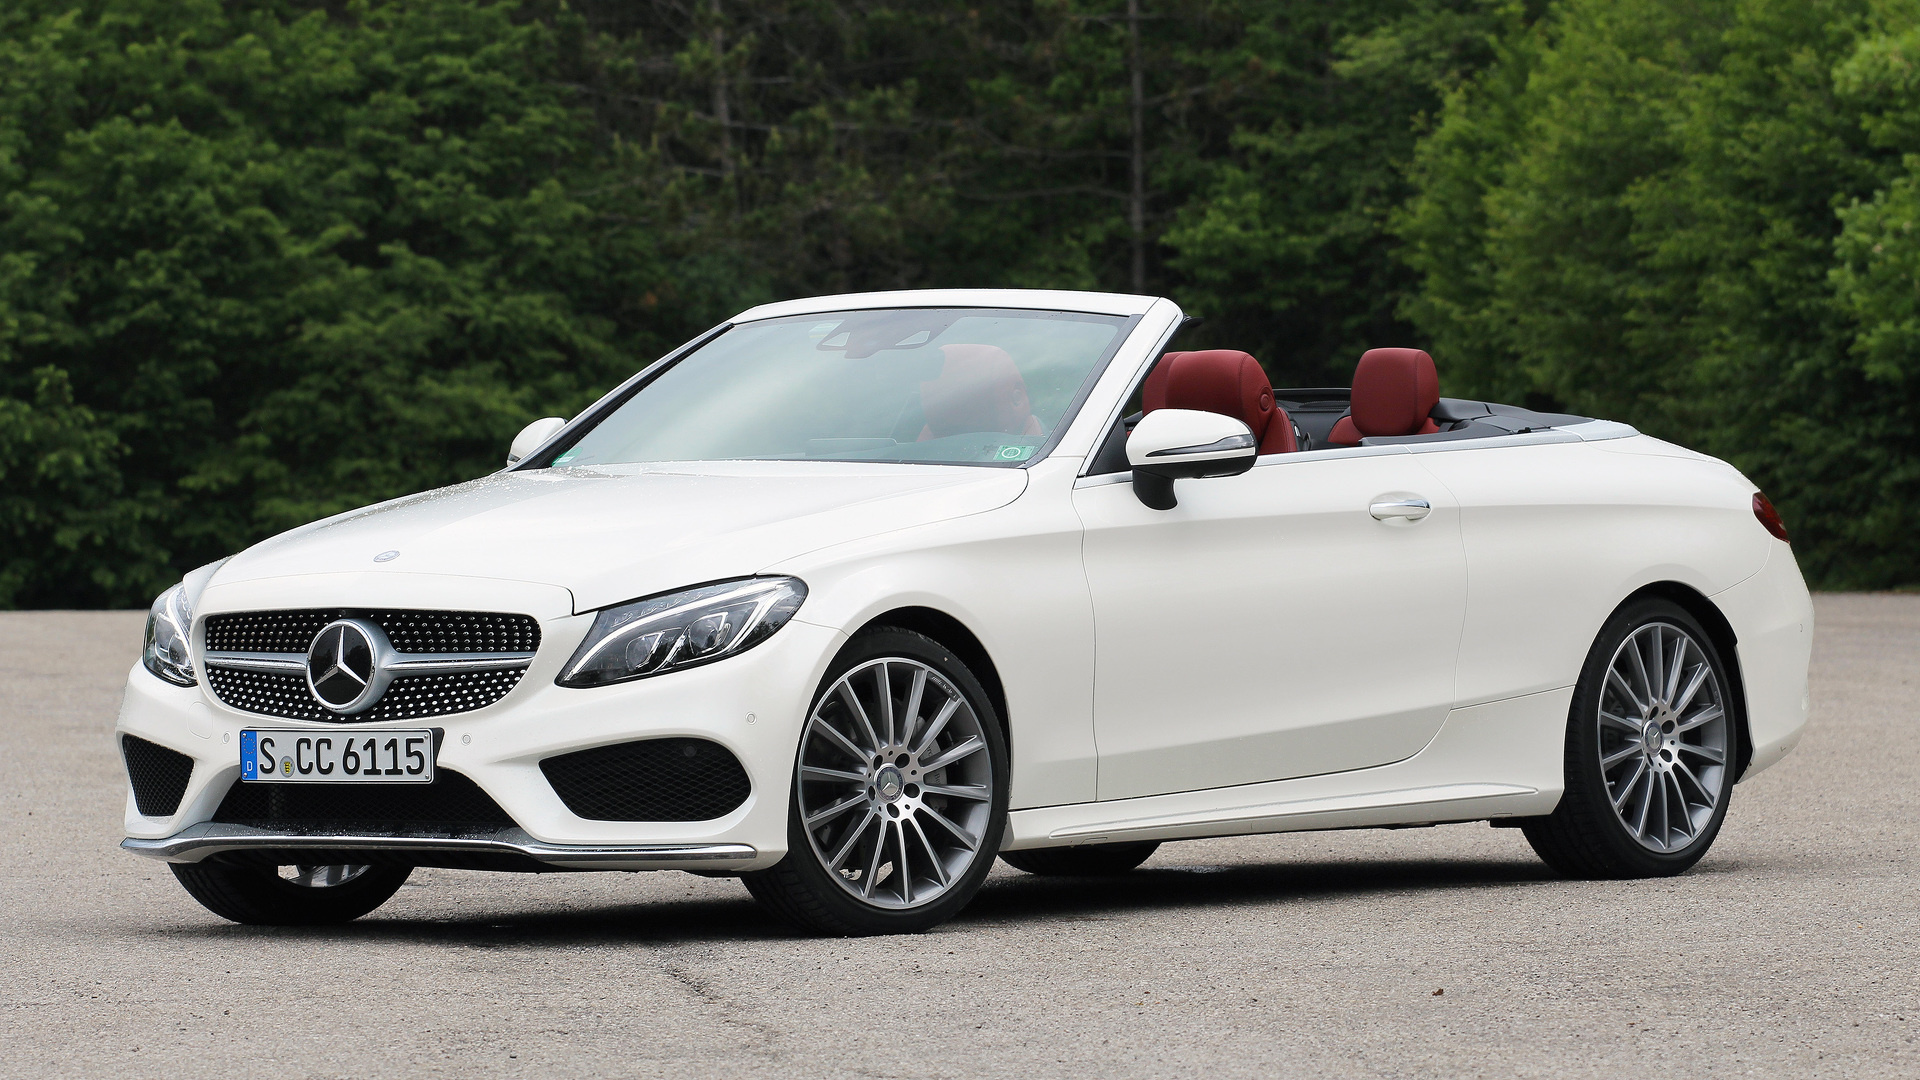 mercedes oregon amg wholesale benz for sport at franks sale auto company pkg sherwood in used